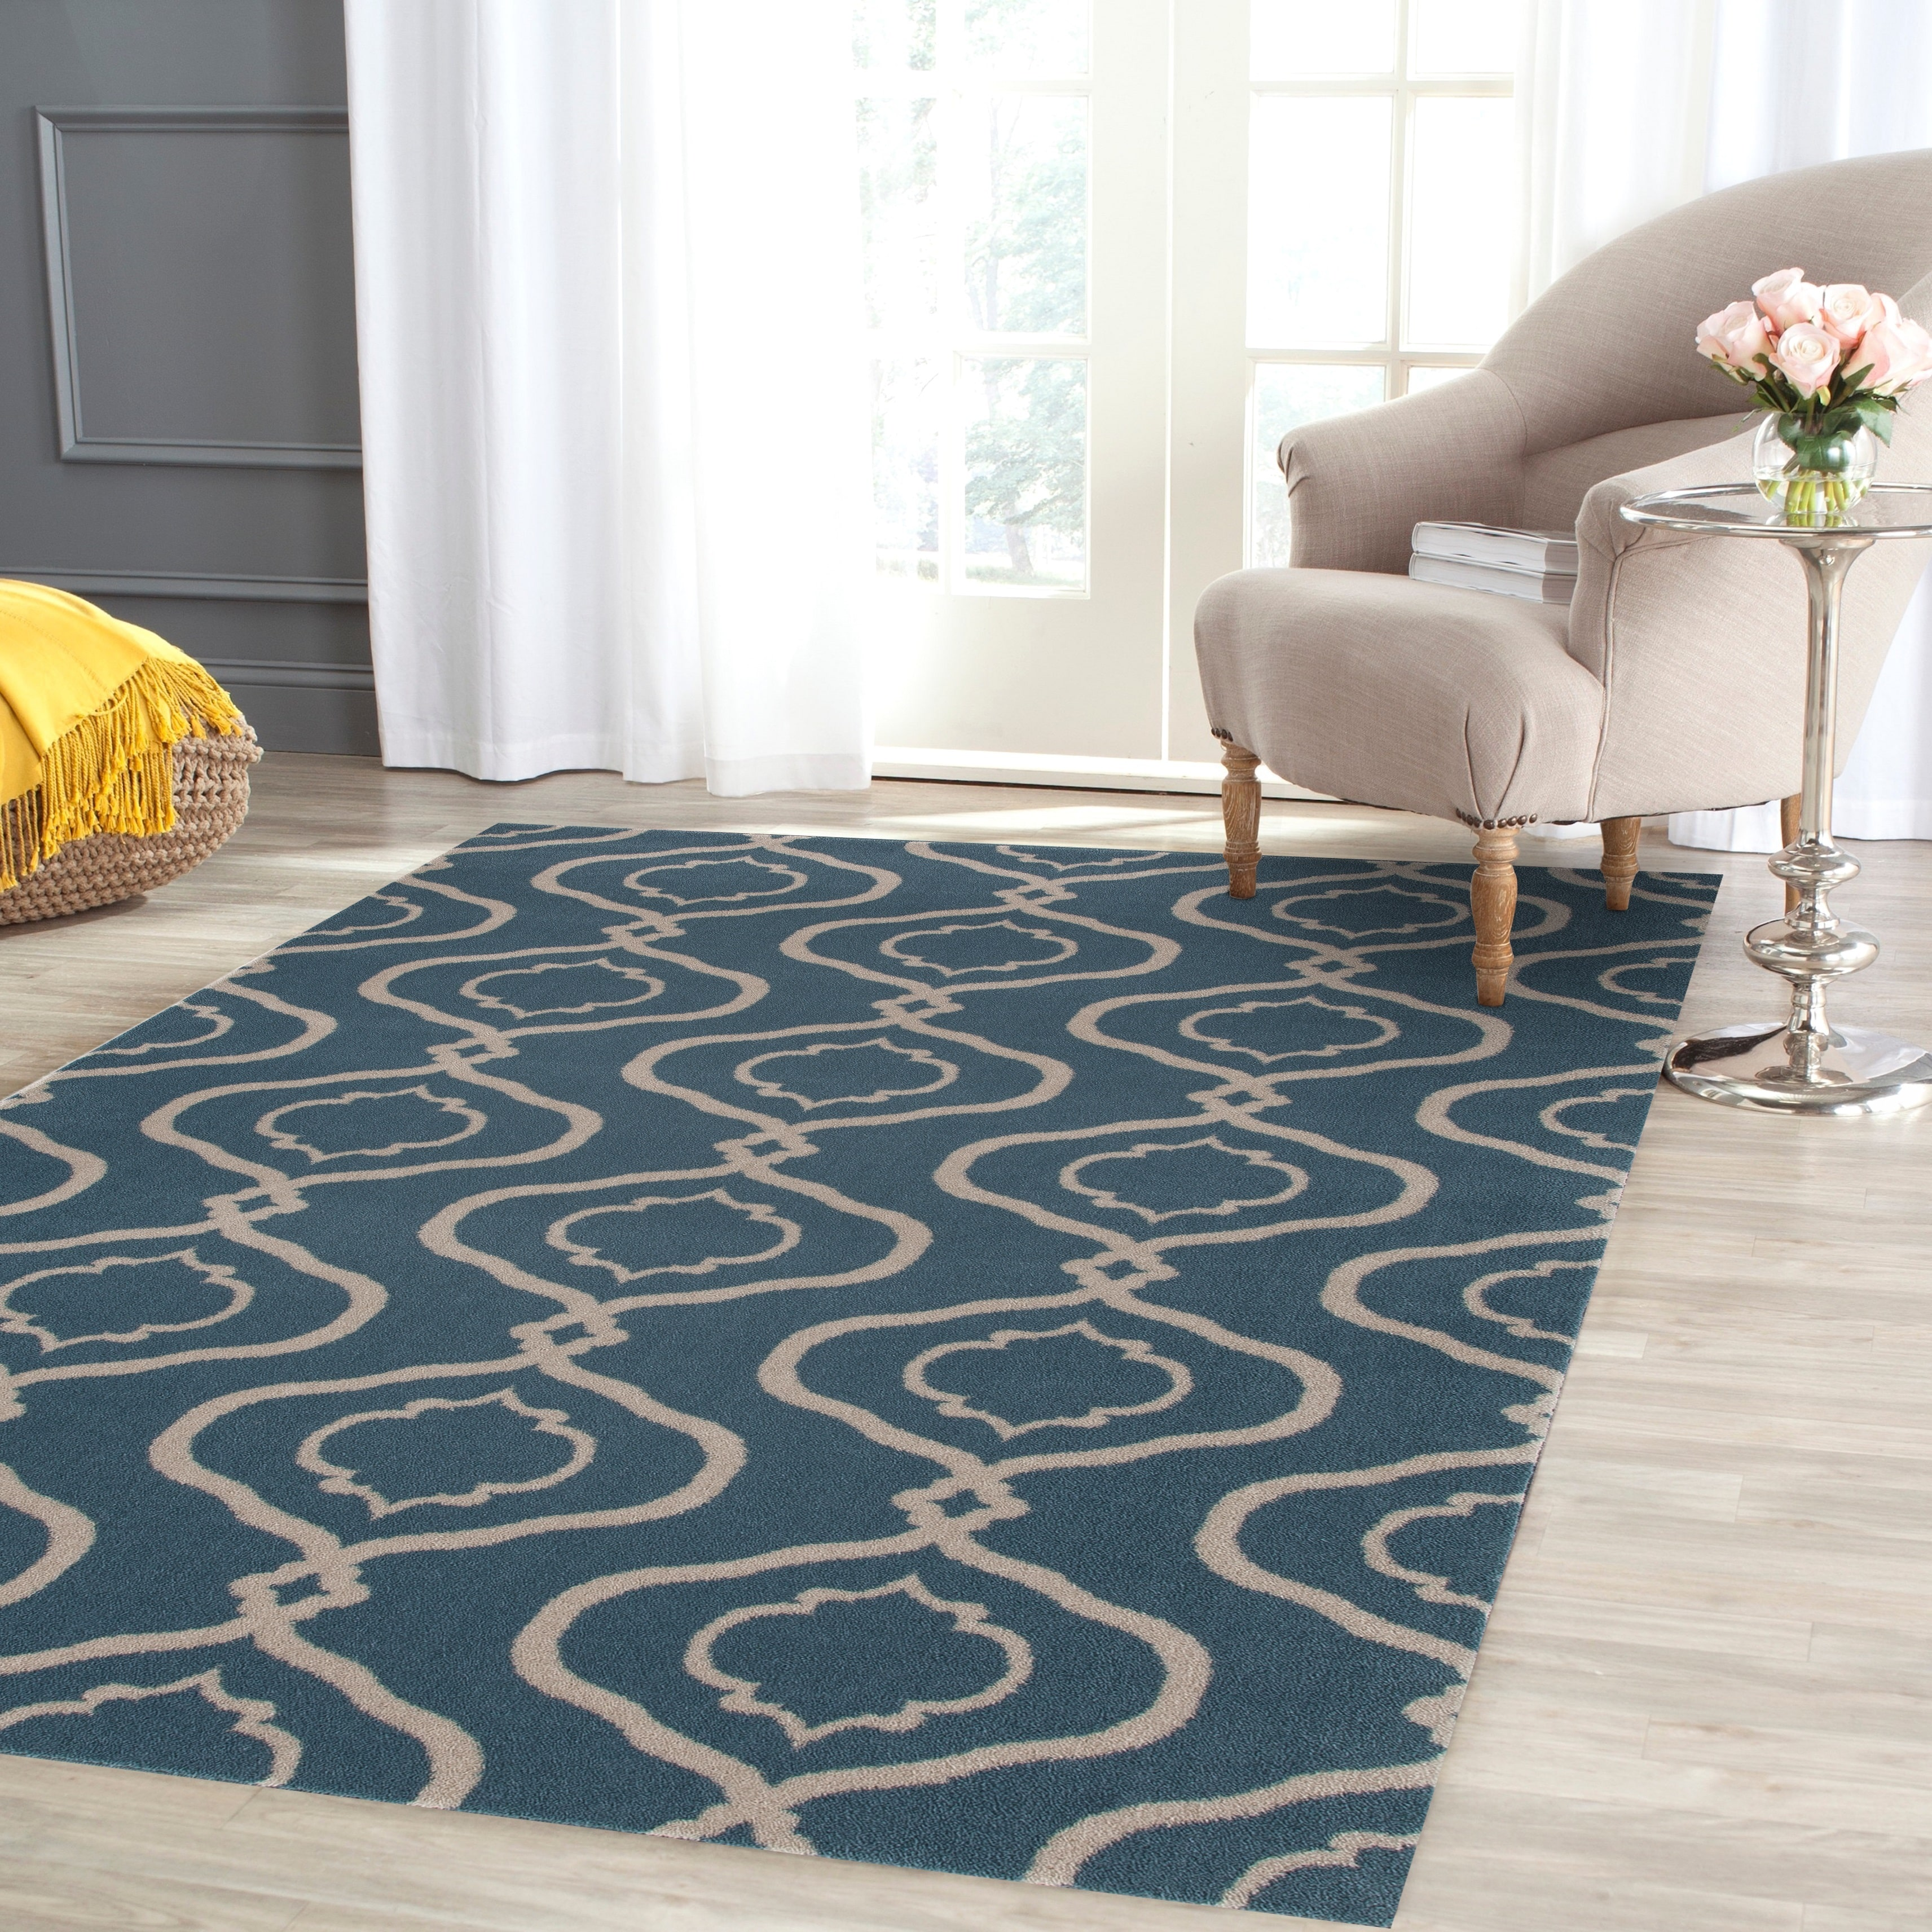 Moraccan Trellis Modern Blue Area Rug or Runner